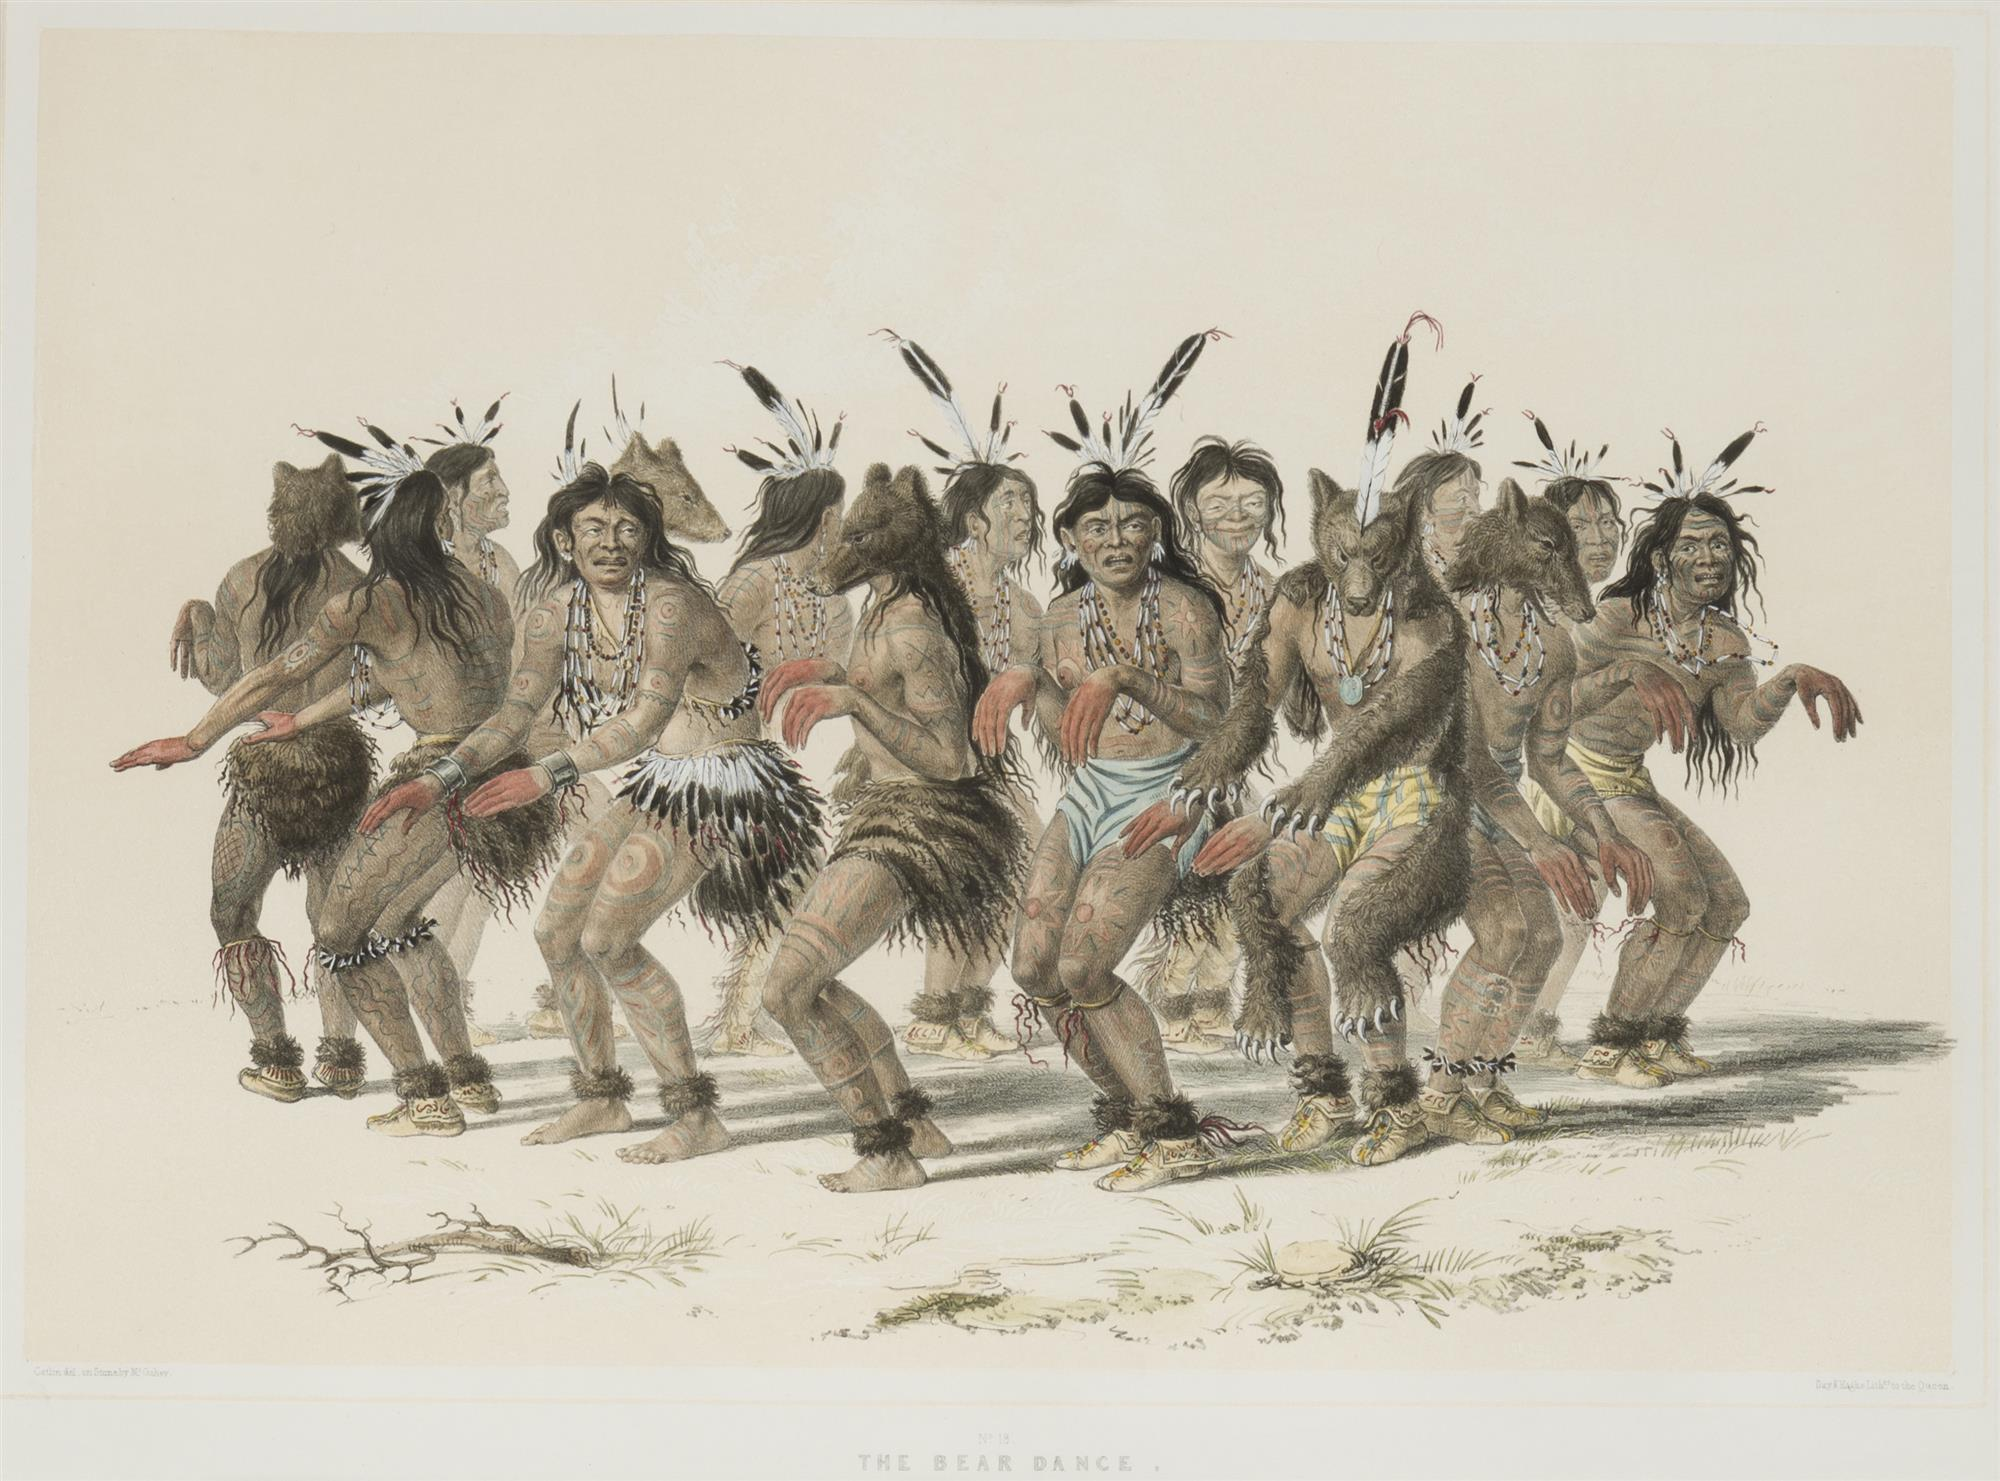 """George Catlin, (1796-1872 Jersey City, NJ), """"The Bear Dance,"""" 1844-45, plate 18 (from the """"North American Indian Portfolio""""), Hand-colo"""